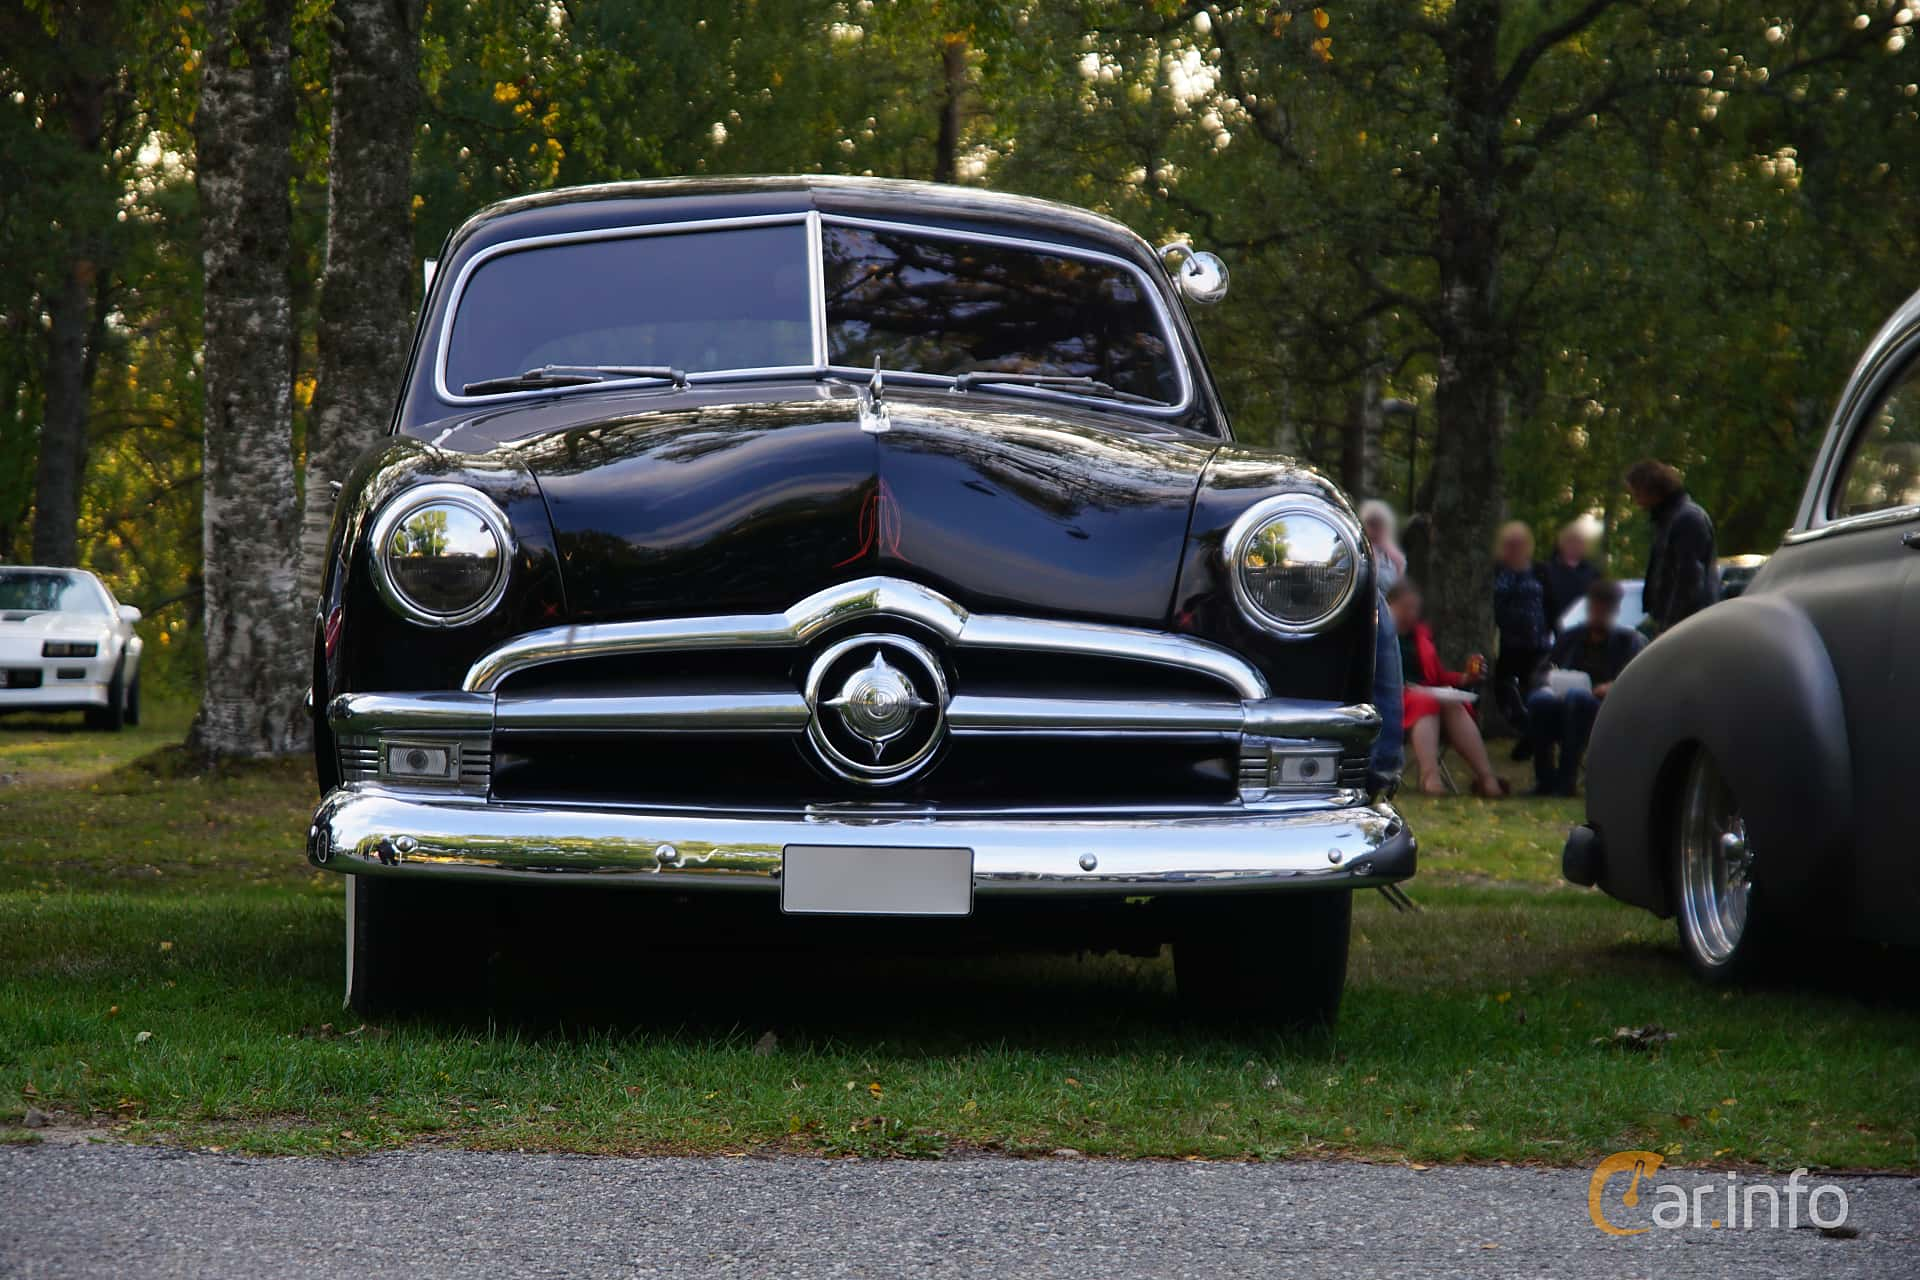 Ford Custom Deluxe Tudor Sedan 3.9 V8 Manual, 102hp, 1950 at Onsdagsträffar på Gammlia Umeå v.35 / 2018